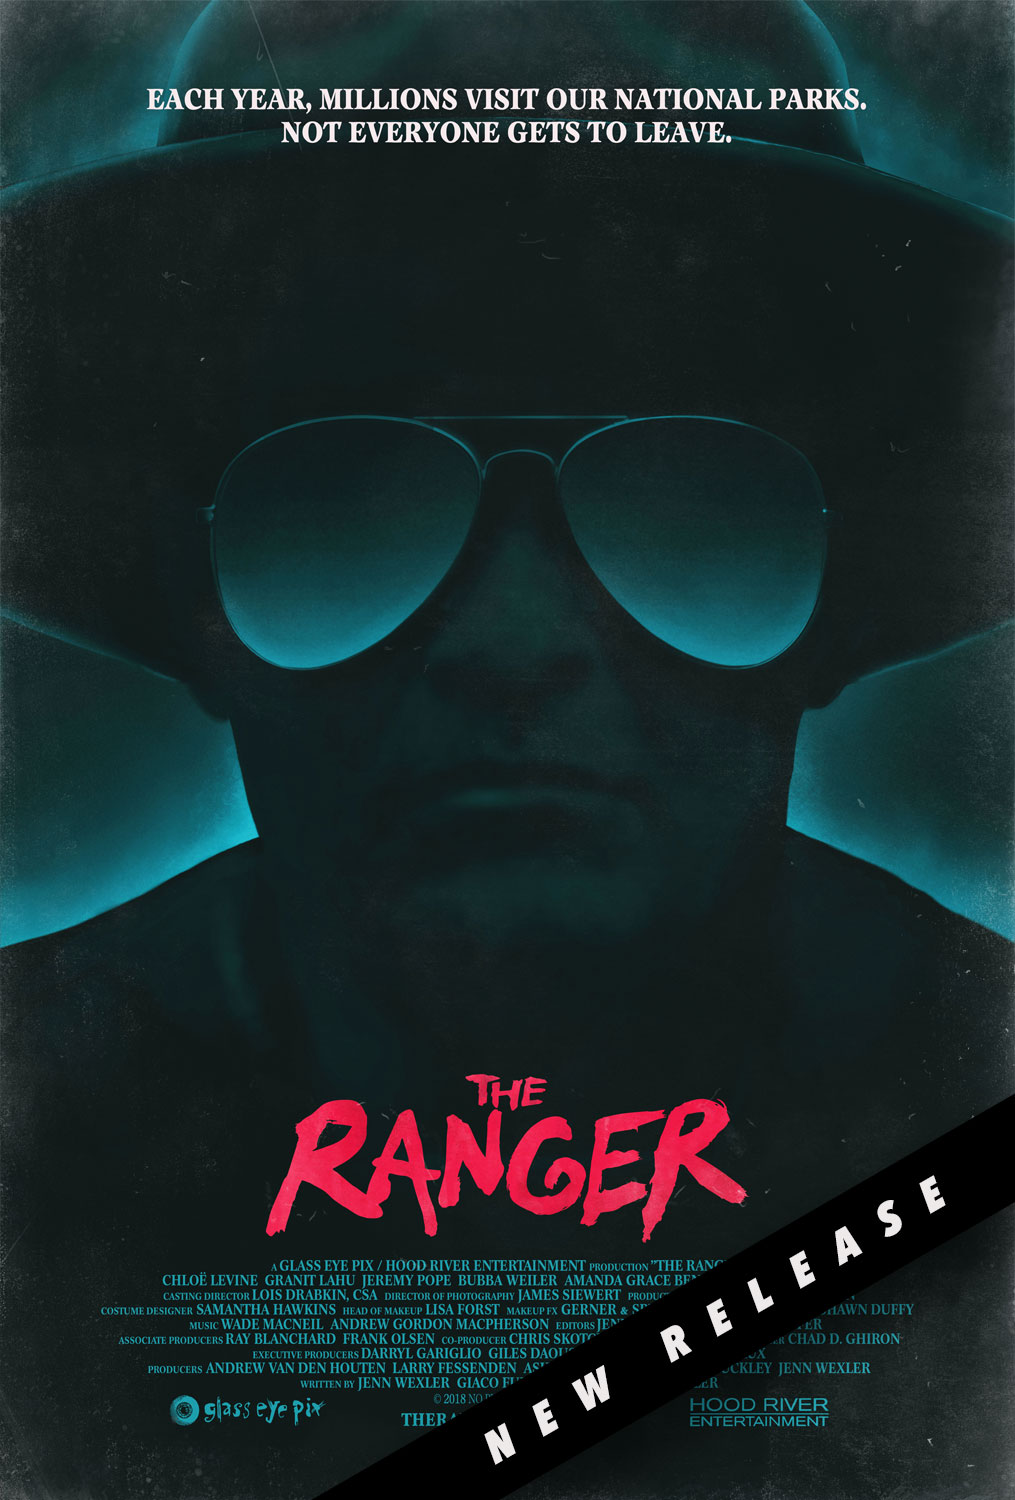 79thbroadway_the_ranger_movie_poster_new_release.jpg